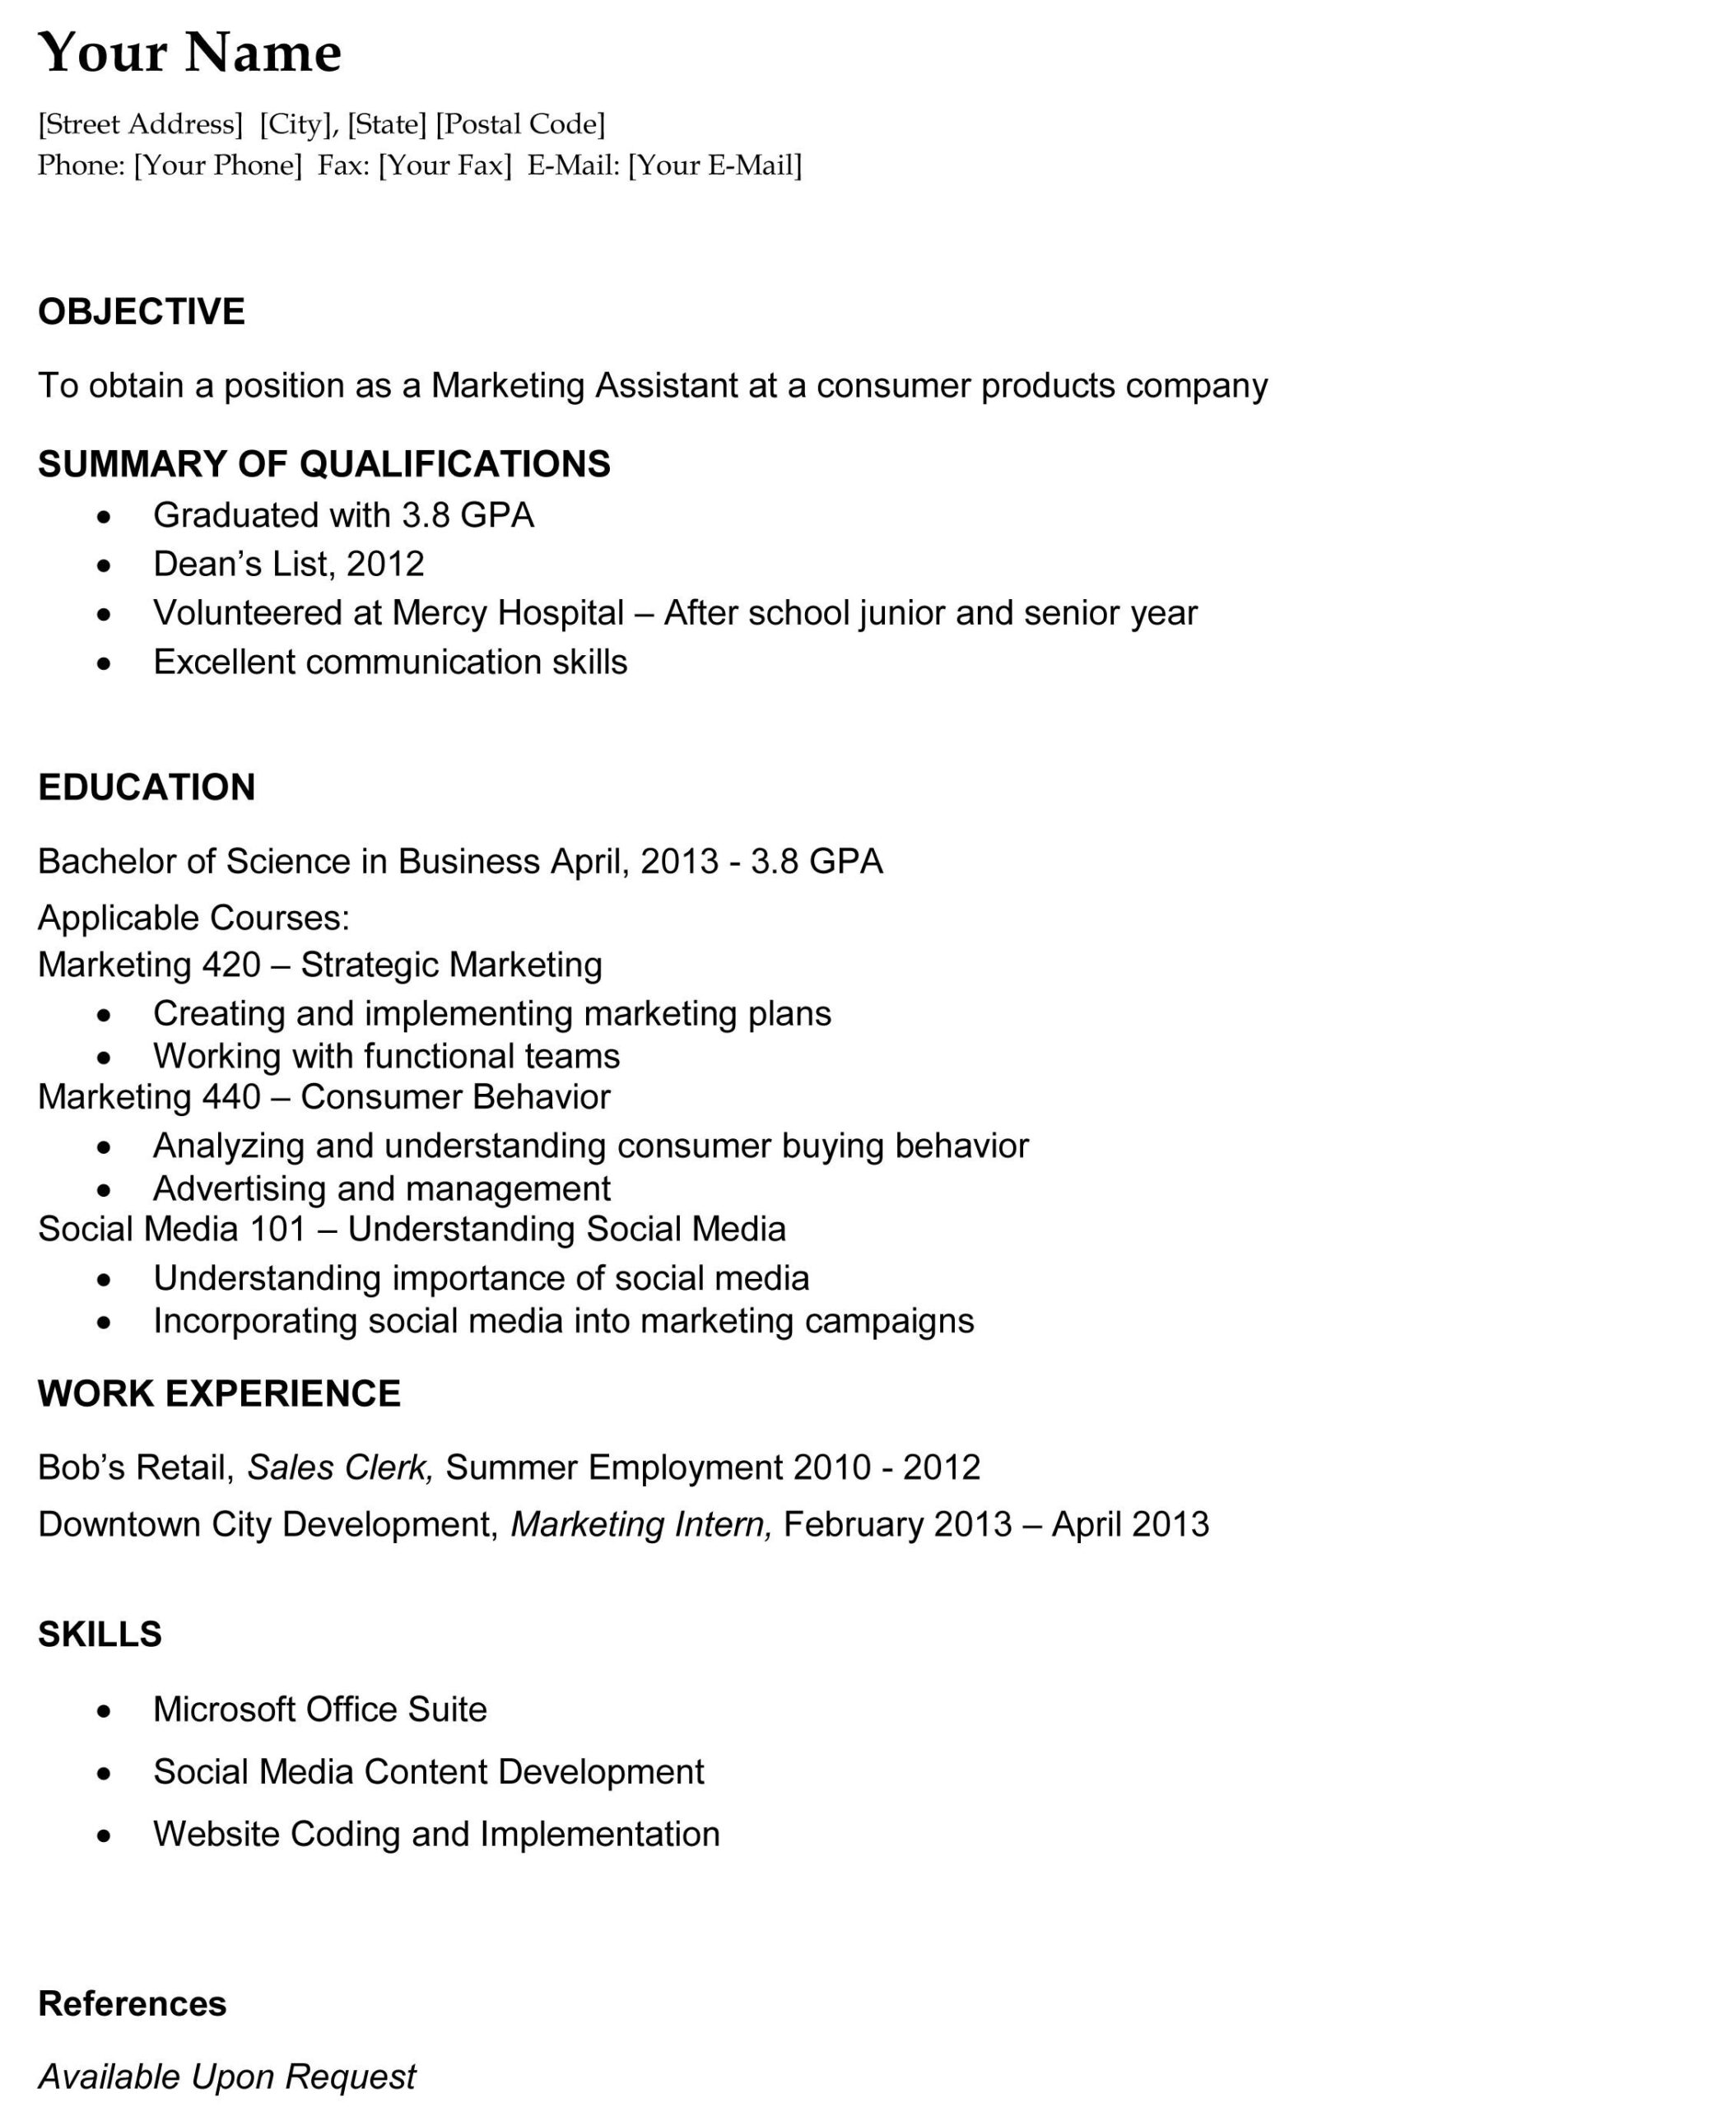 sample psw resume cover letter examples nurse practitioner emergency staff objective job Resume Psw Qualifications Resume